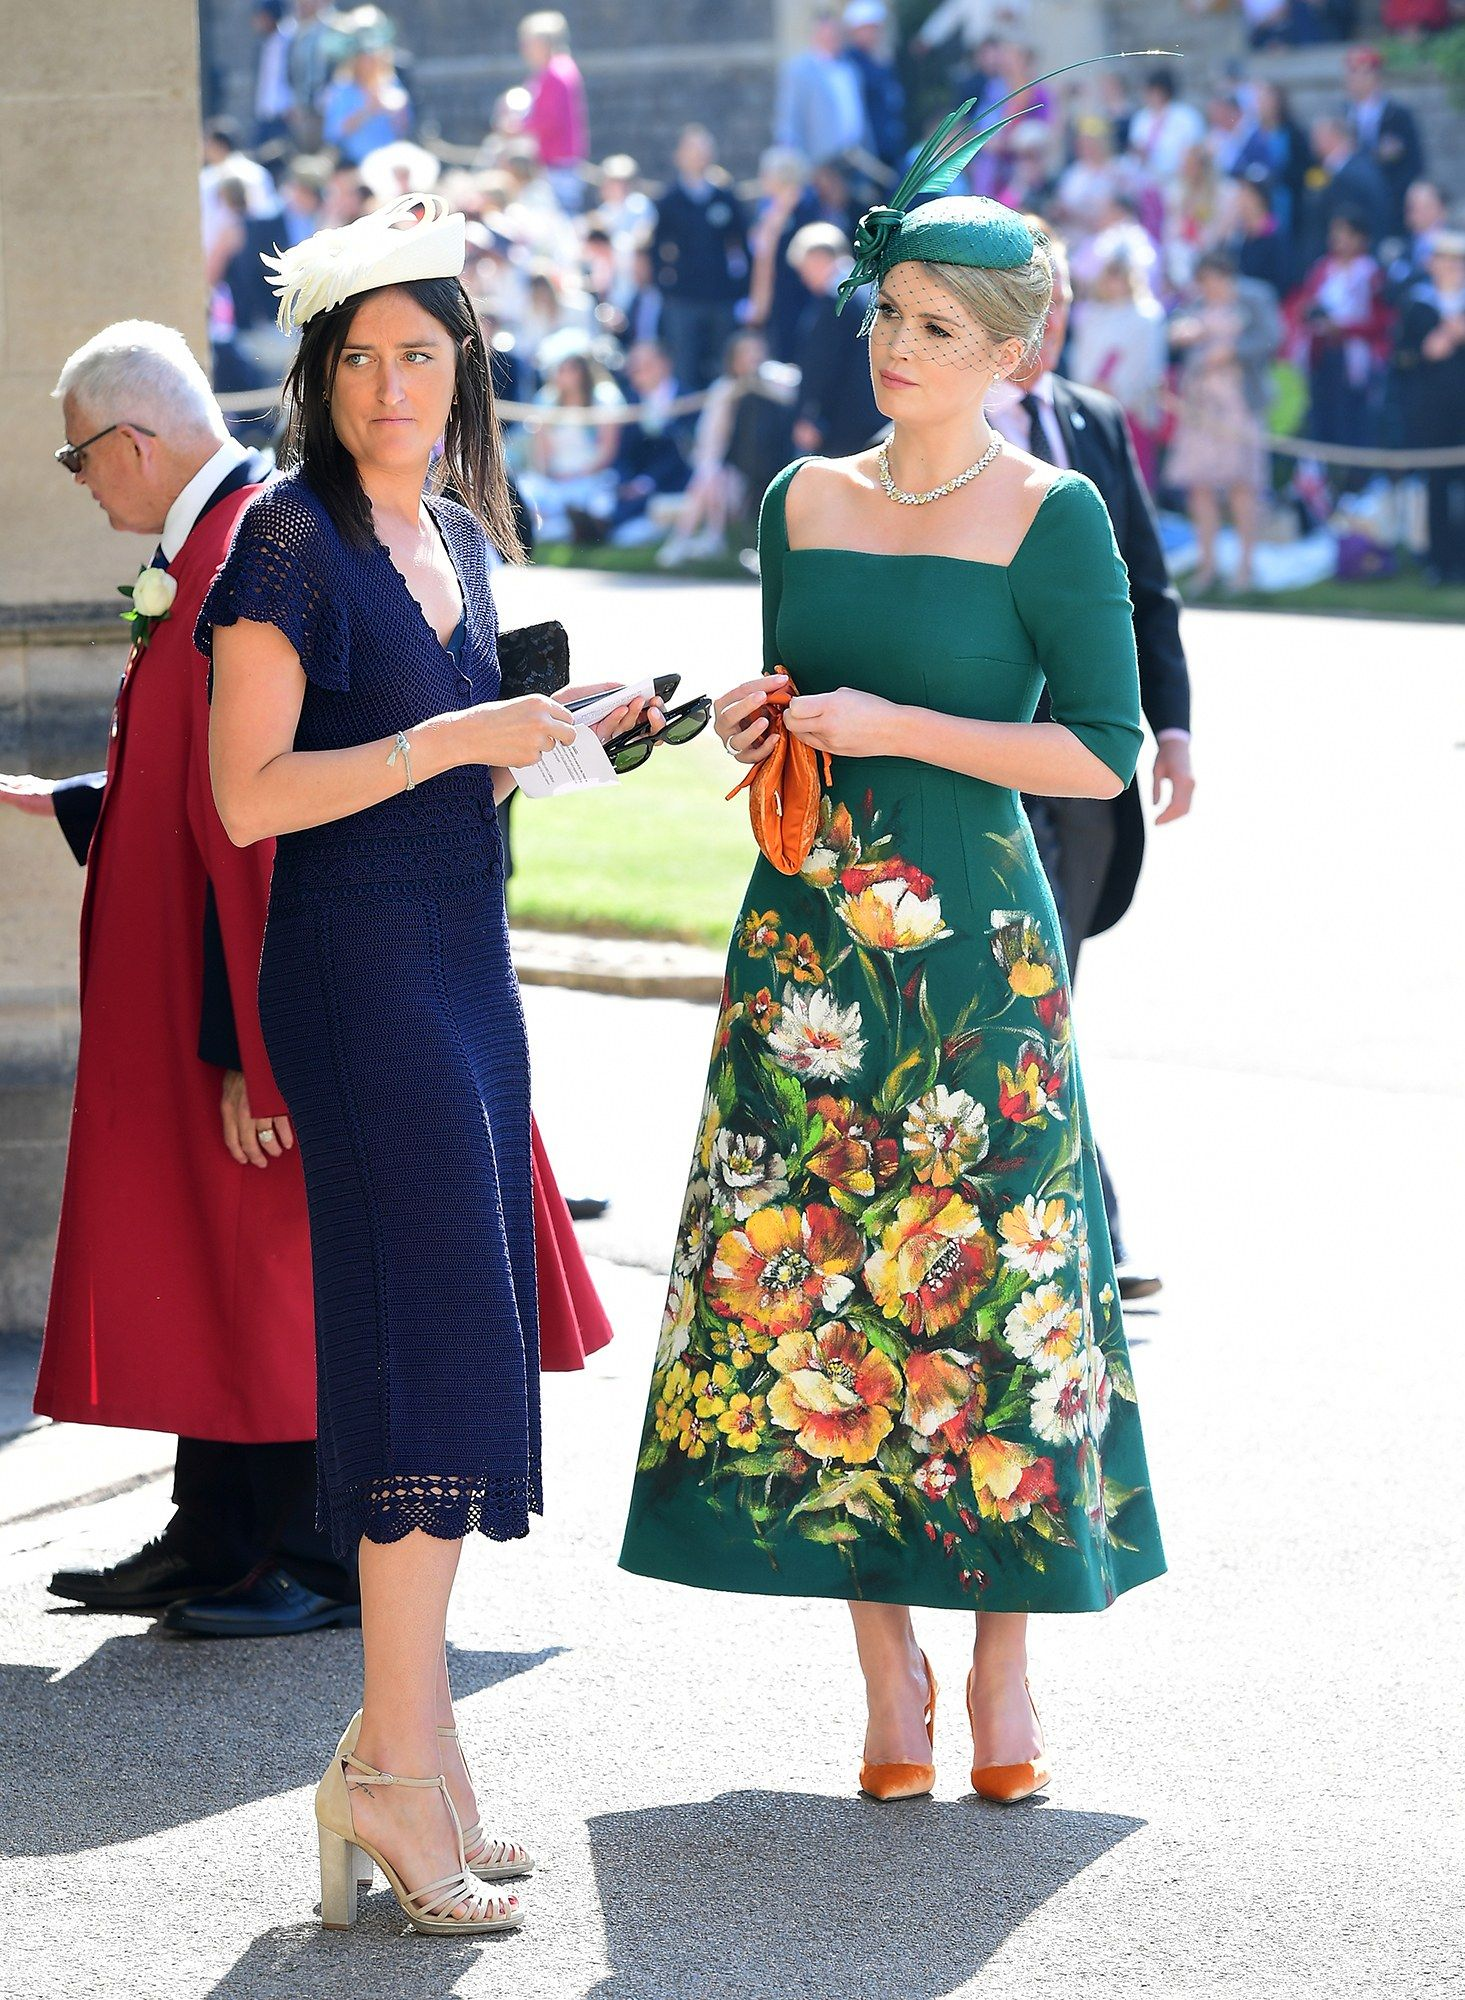 The Royal Wedding Dresses Hats And More Royal Wedding Guests Outfits Wedding Guest Outfit Guest Outfit [ 2000 x 1465 Pixel ]